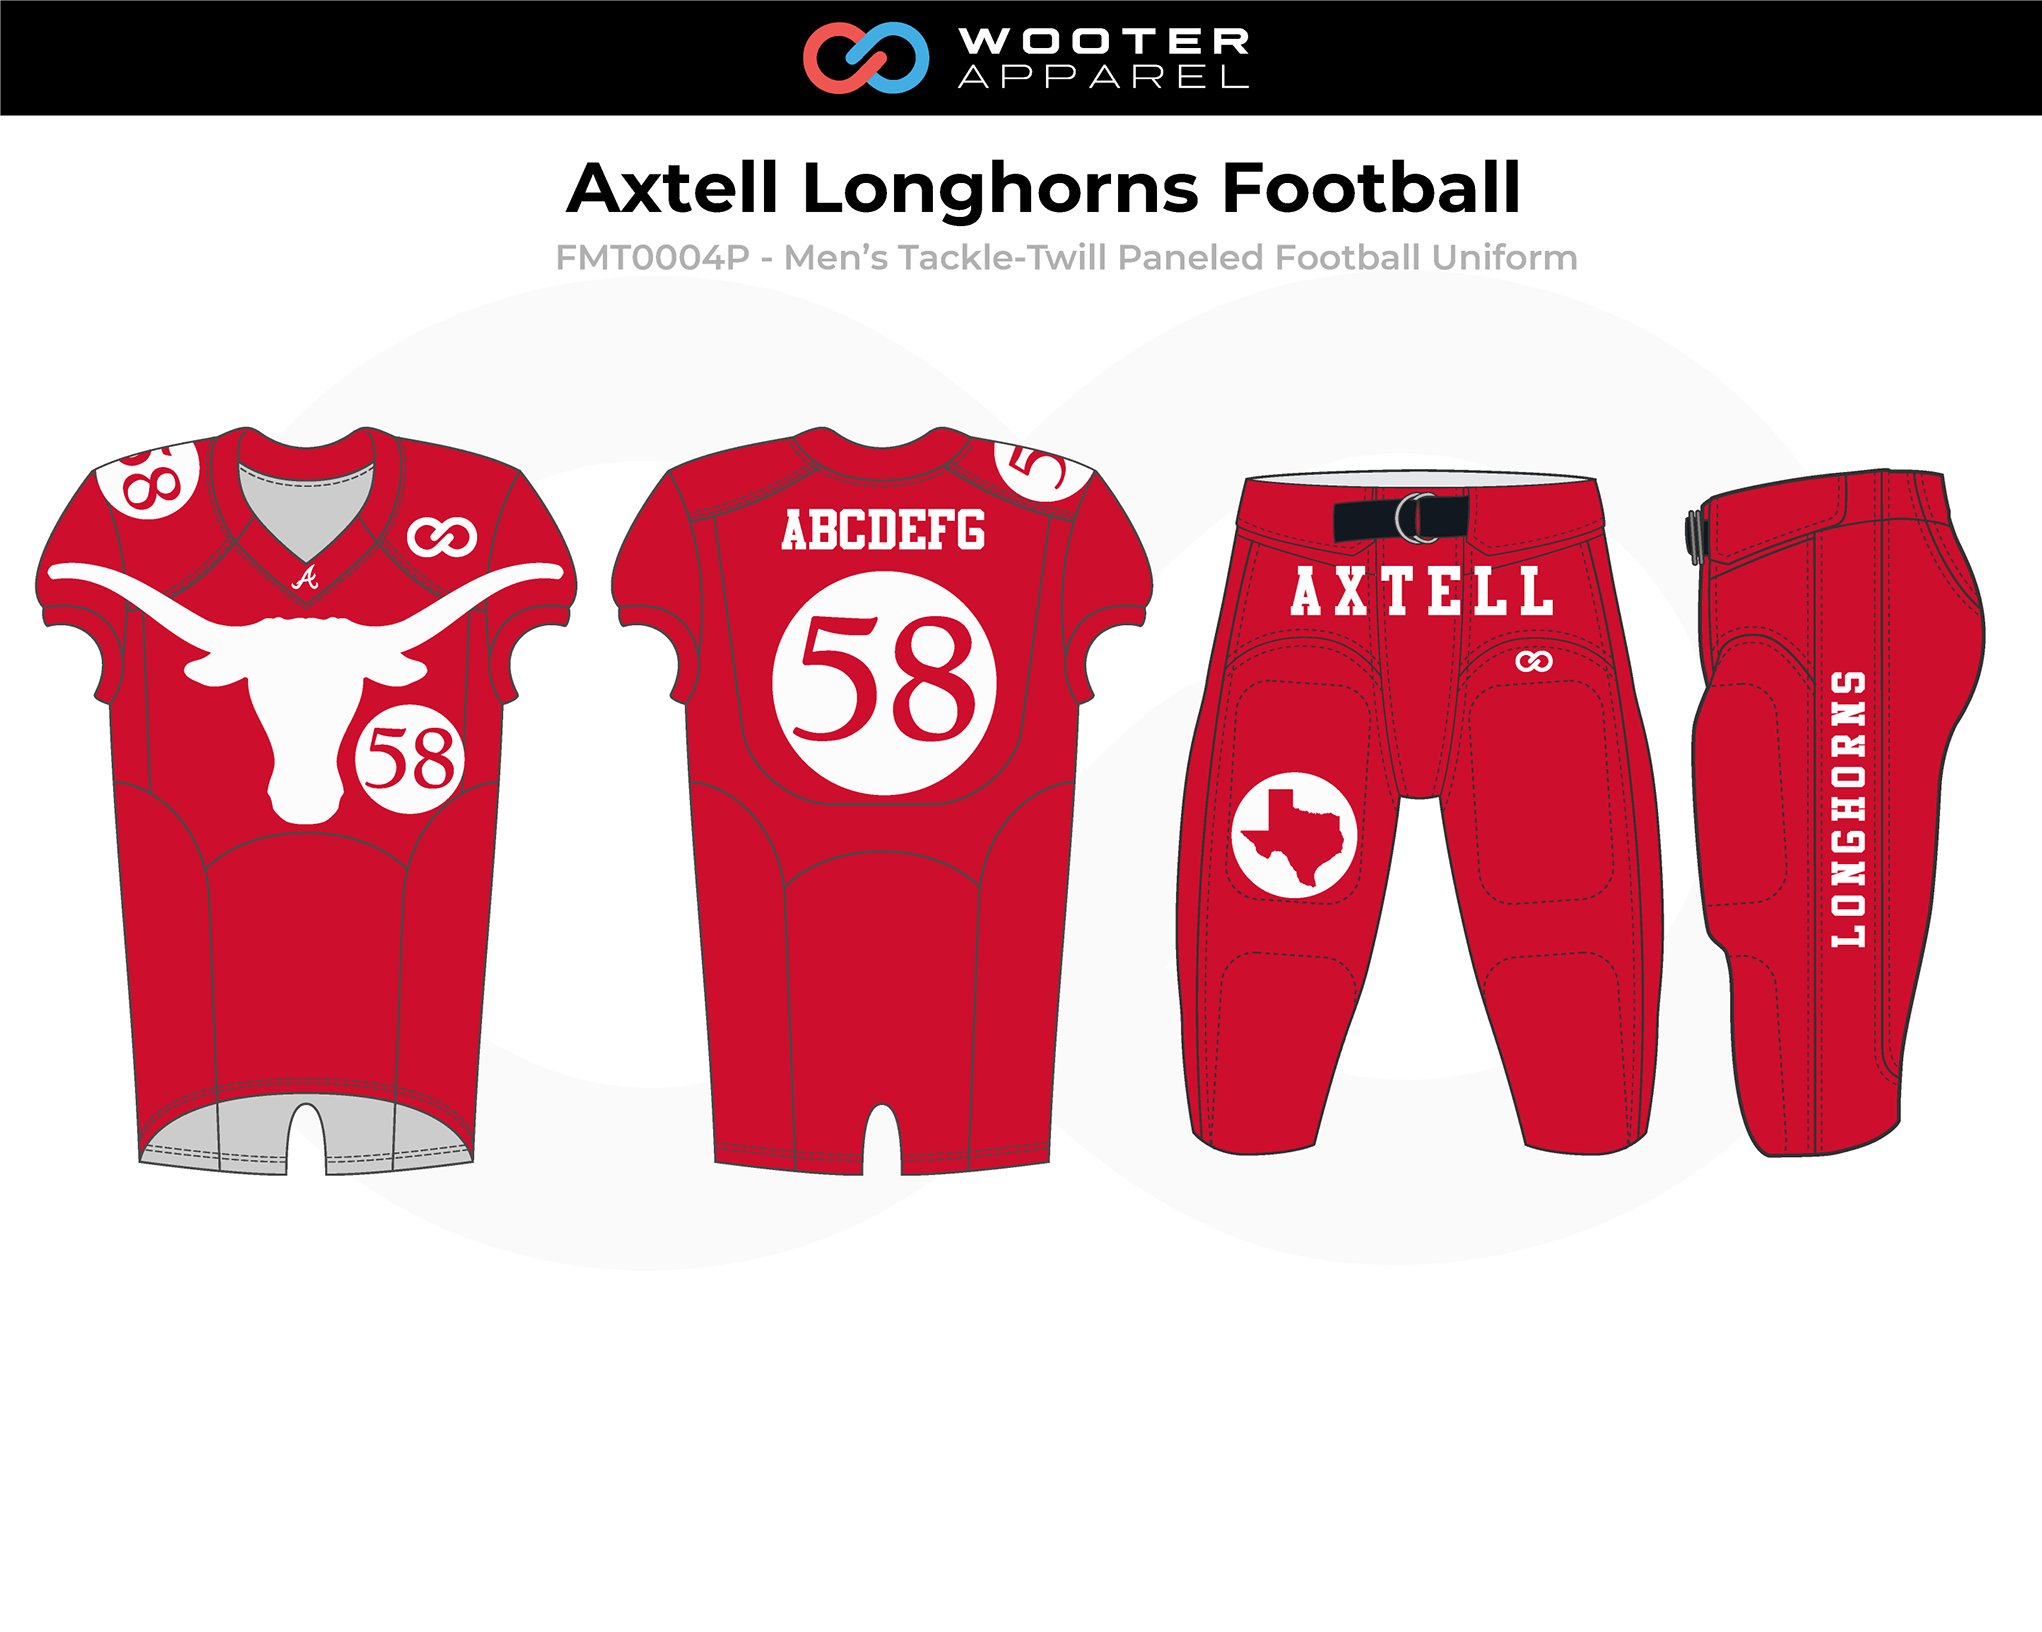 AXTELL LONGHORNS Red White Men's Tackle-Twill Football Uniforms, Jerseys, and Pants